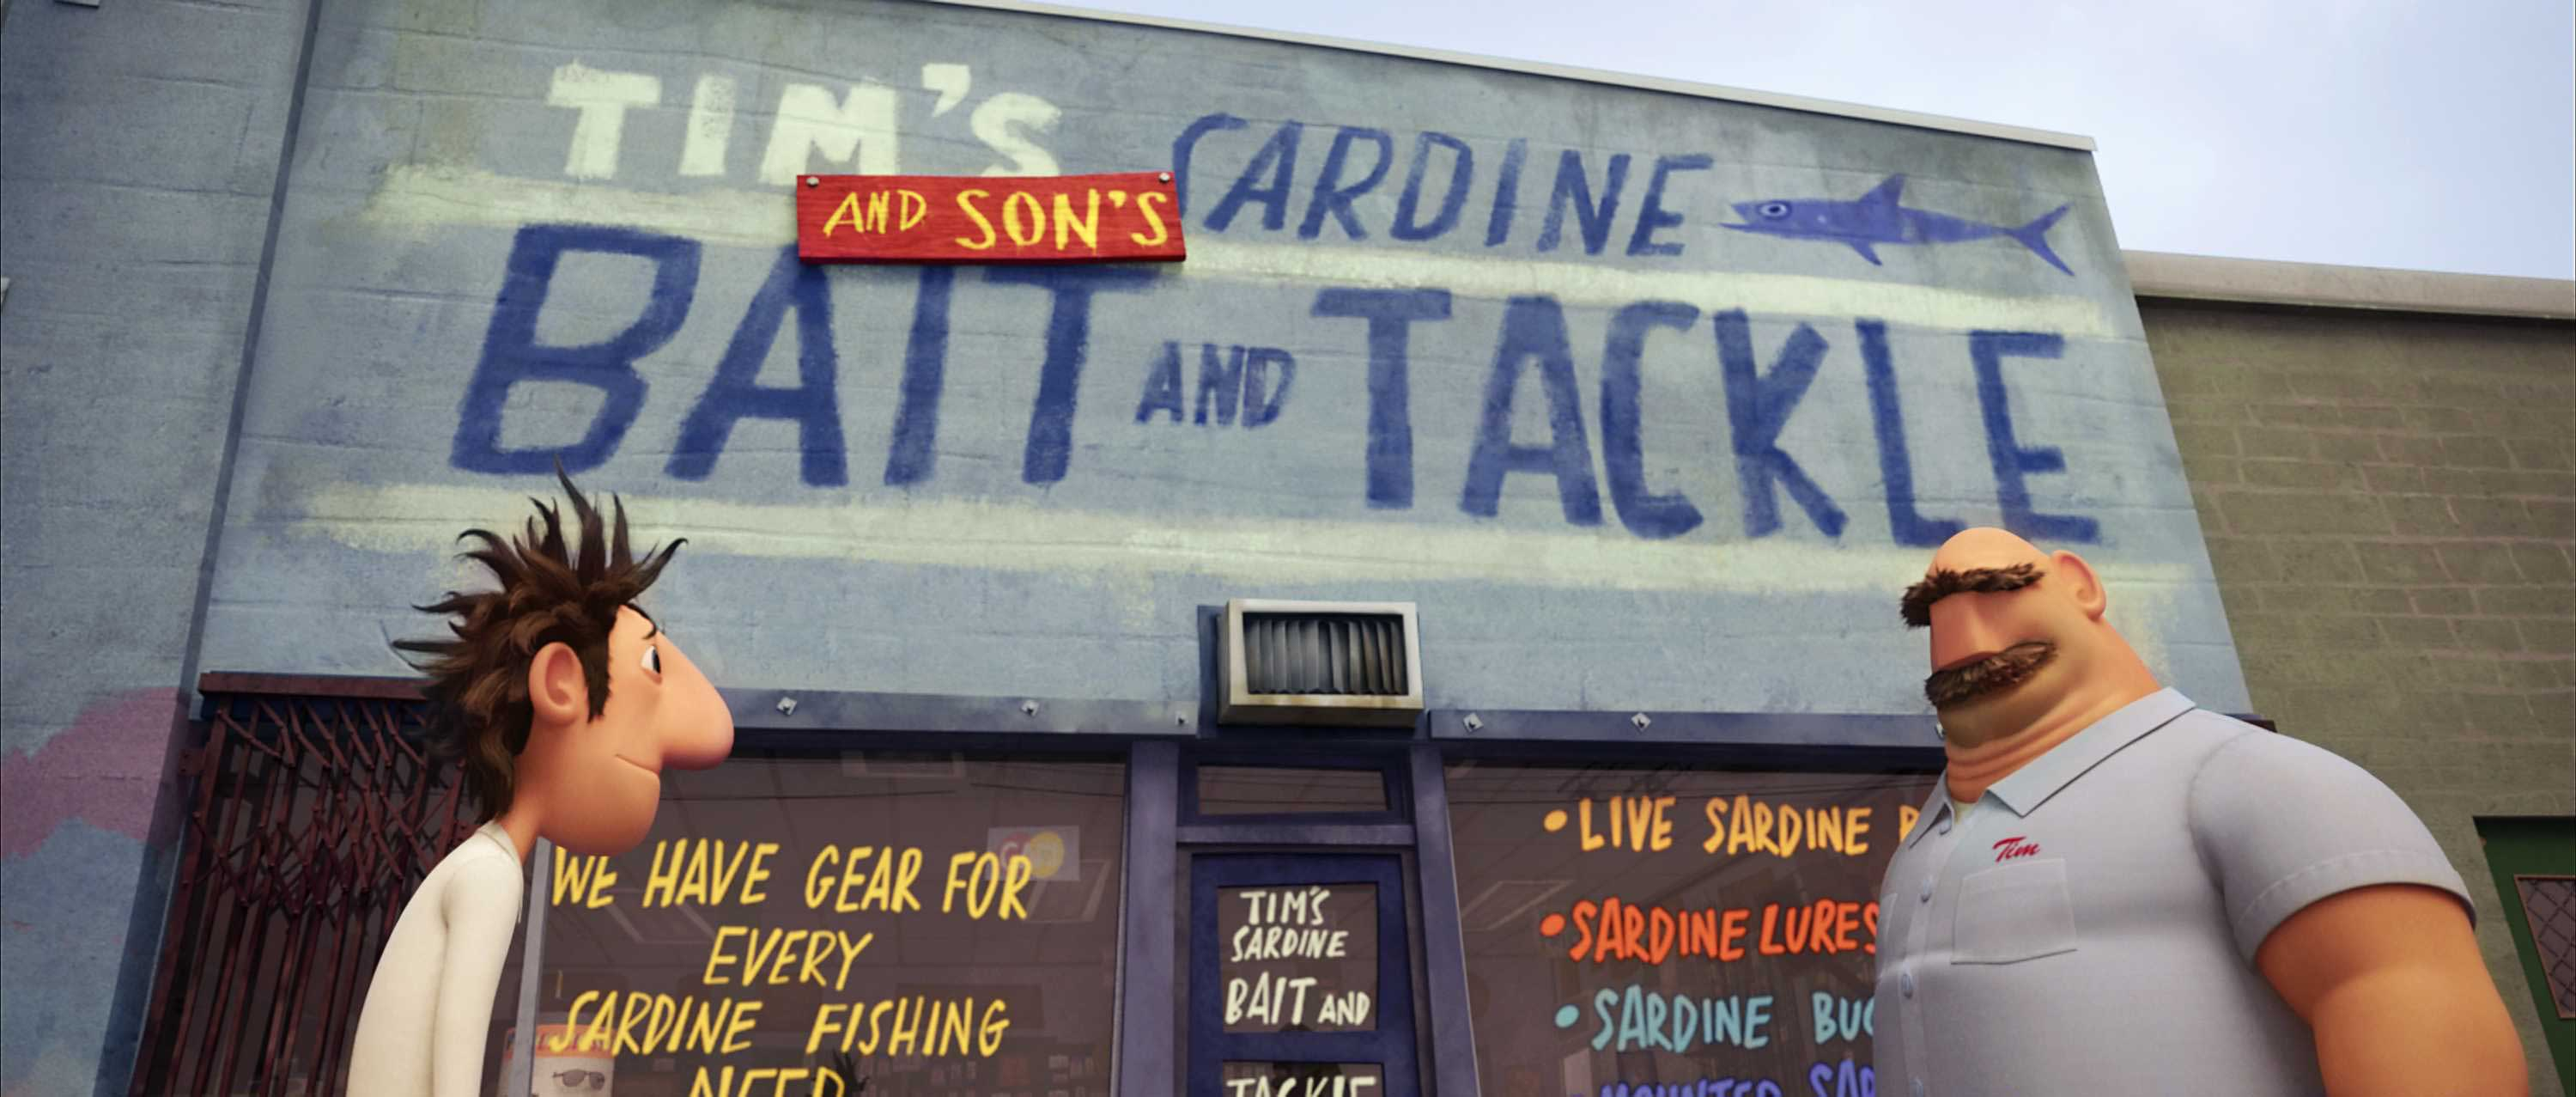 You load sixteen tons (of sardines), and what do you get?